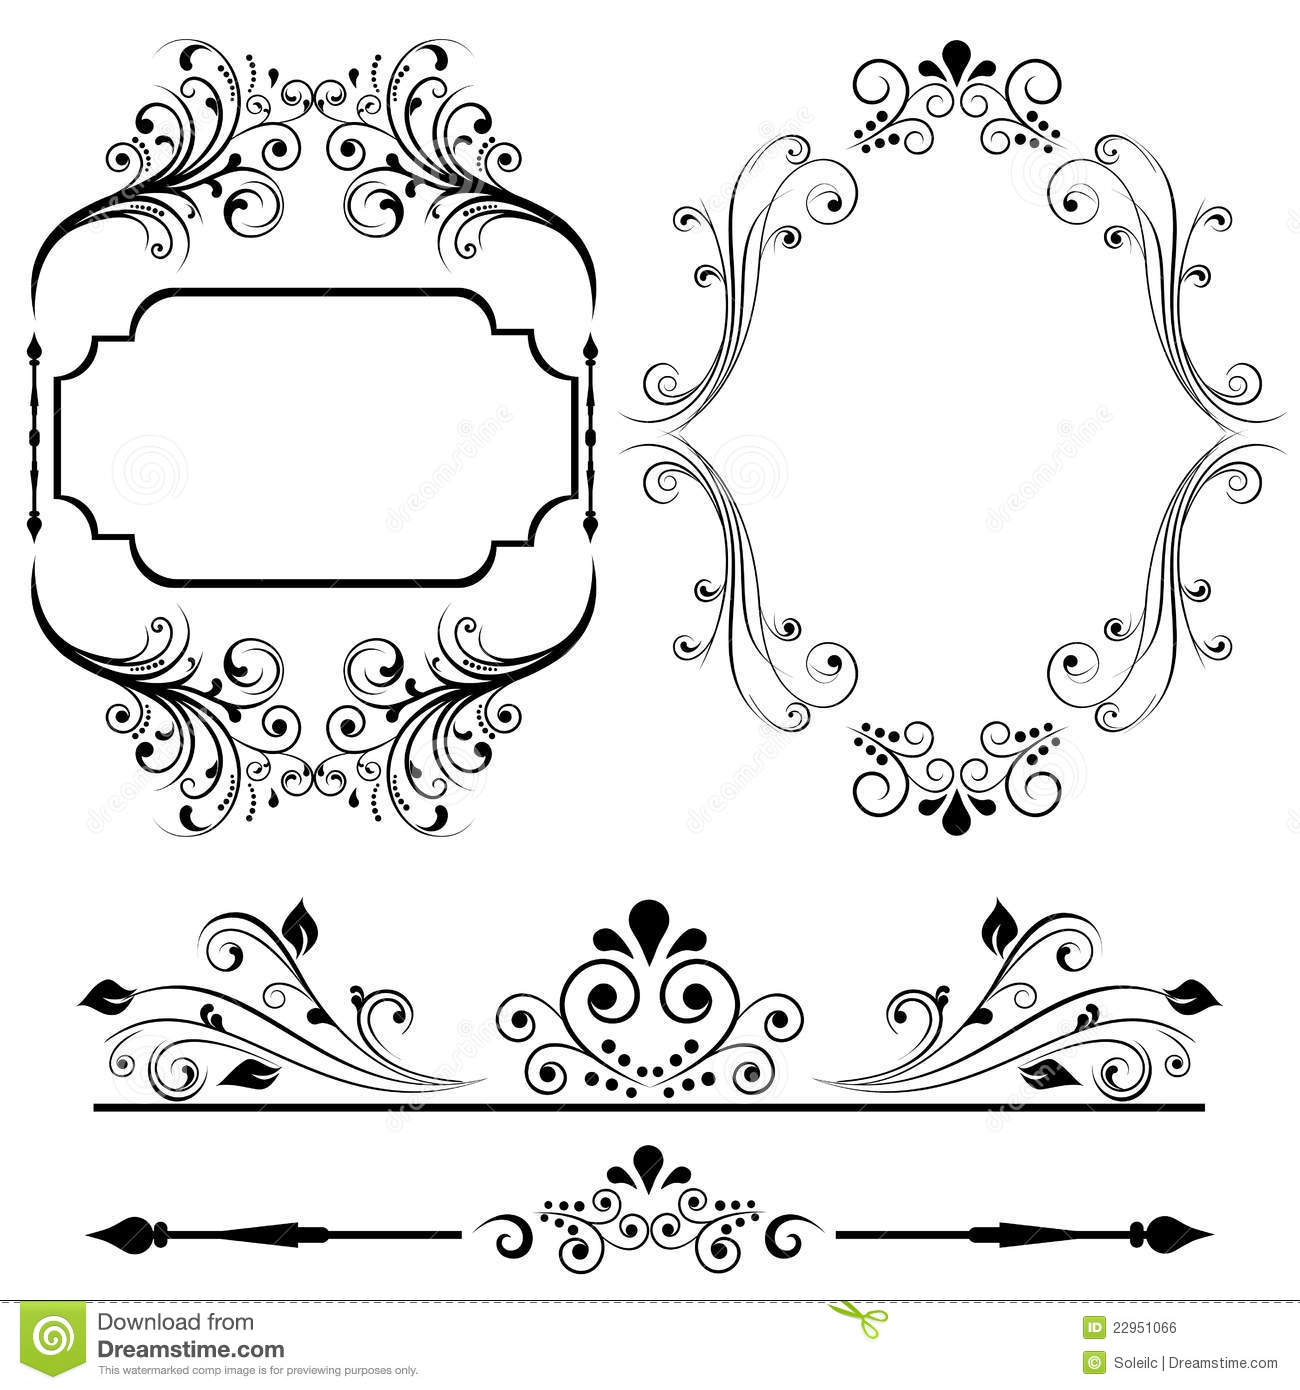 Border And Frame Designs Royalty Free Stock Image - Image: 22951066